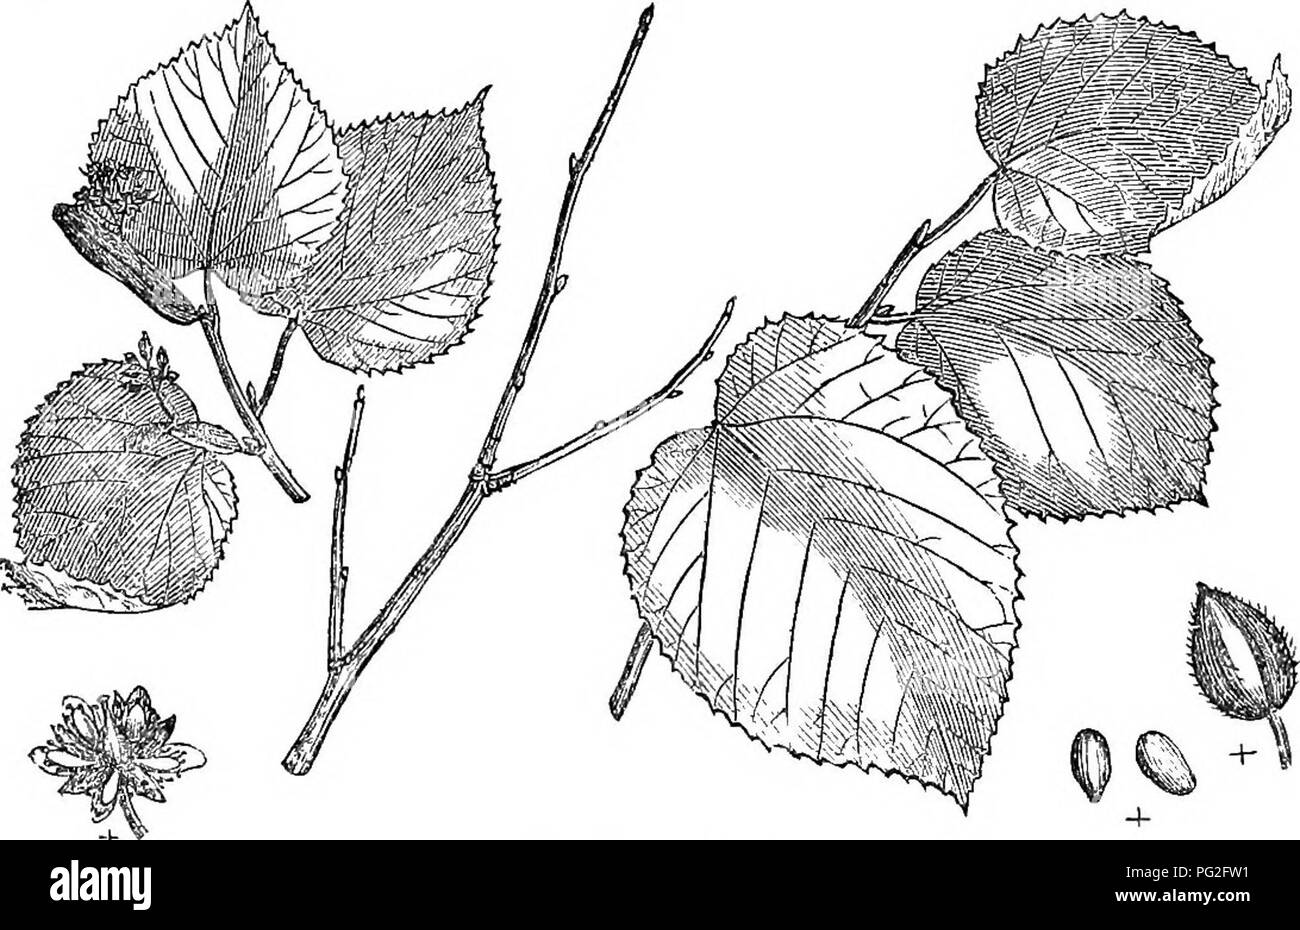 . Trees and shrubs : an abridgment of the Arboretum et fruticetum britannicum : containing the hardy trees and schrubs of Britain, native and foreign, scientifically and popularly described : with their propagation, culture and uses and engravings of nearly all the species. Trees; Shrubs; Forests and forestry. 104. Tflia aiiieriCitna pub^scens. On a general view of the trees, the most obvious external differential cha- racteristics of the European and American limes appear to us to be, that the former have regularly cordate, and the latter obliquely cordate, leaves. The other American limes we - Stock Image